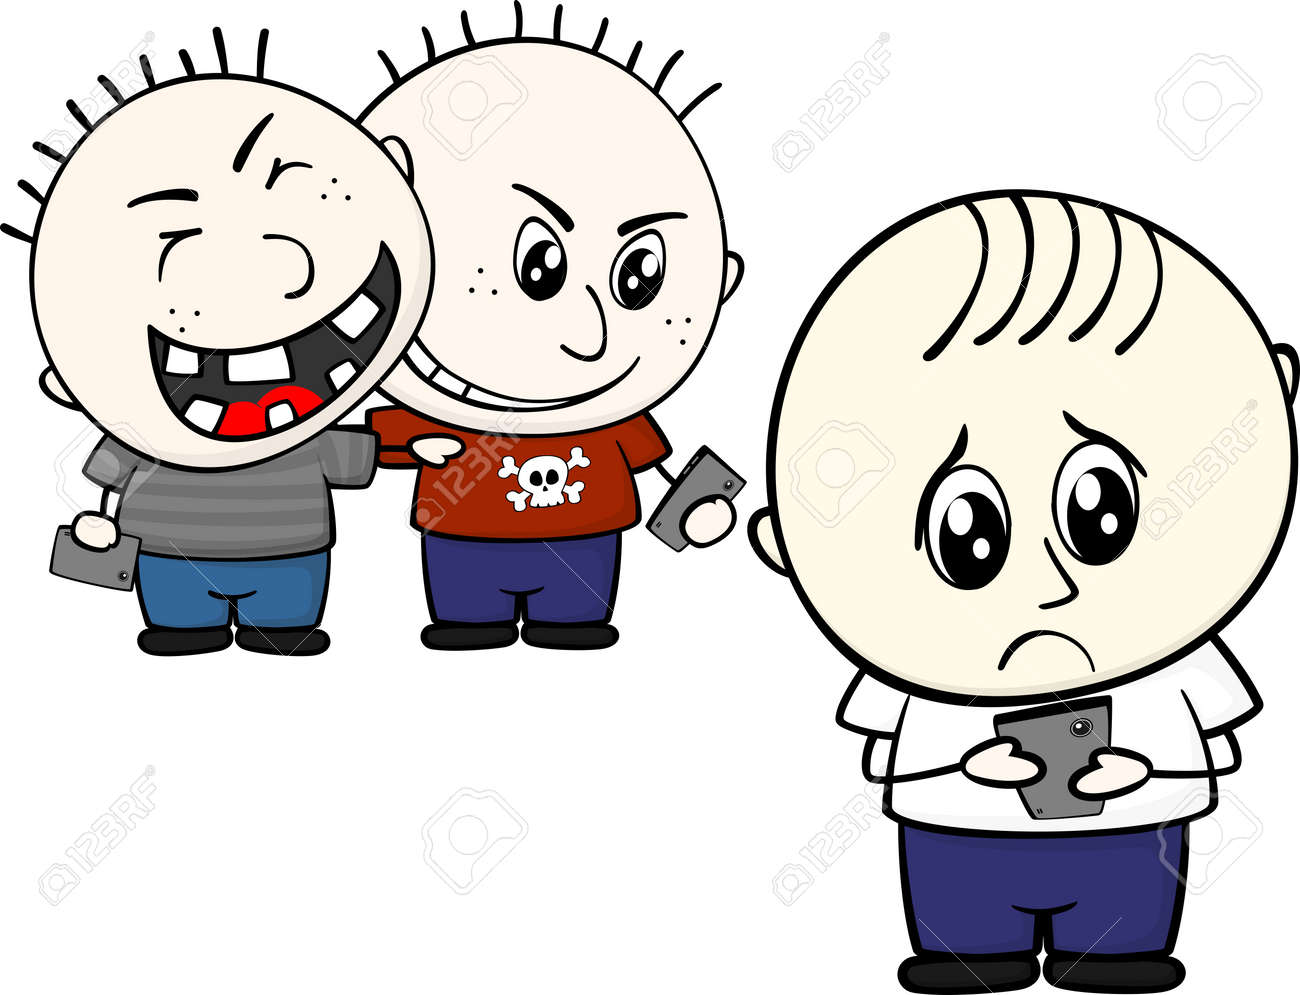 546 cyber bullying stock illustrations cliparts and royalty free rh 123rf com cyber bullying clipart images